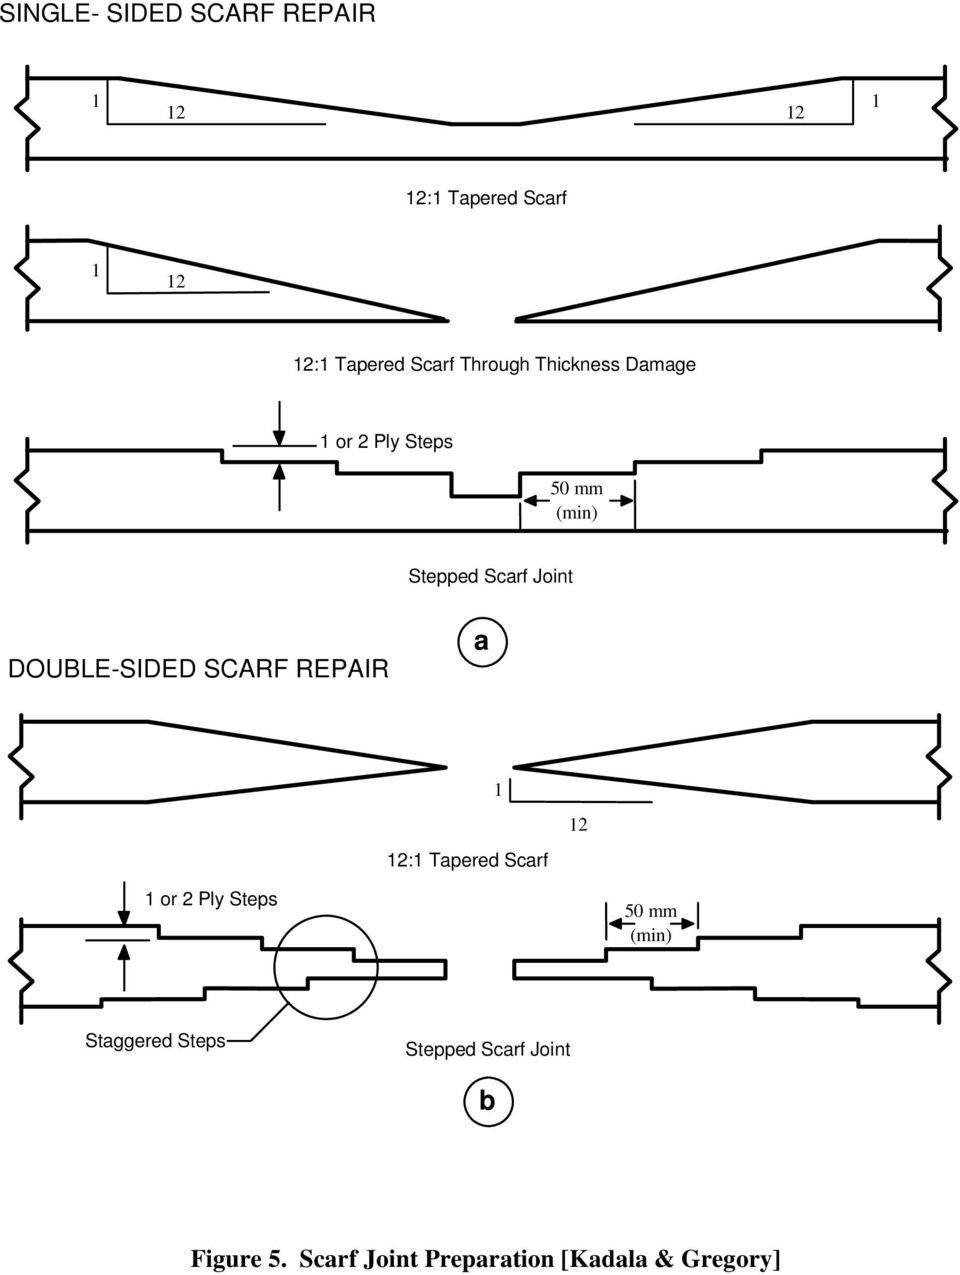 DOUBLE-SIDED SCARF REPAIR a 1 12:1 Tapered Scarf 12 1 or 2 Ply Steps 50 mm (min)